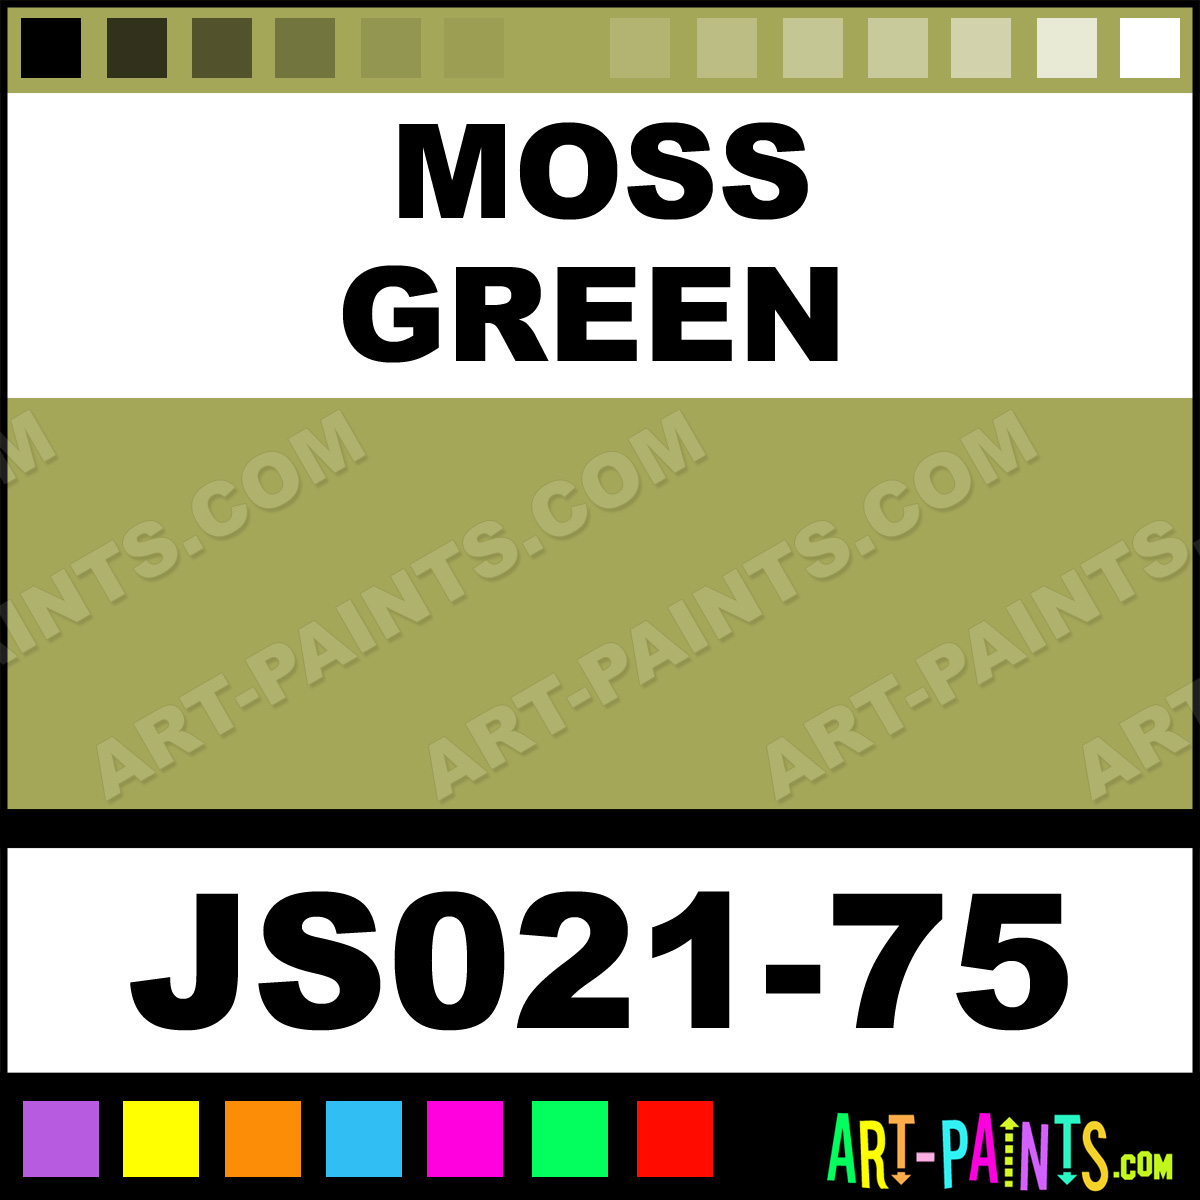 Moss Green Paint Colors: Moss Green Artists Colors Acrylic Paints